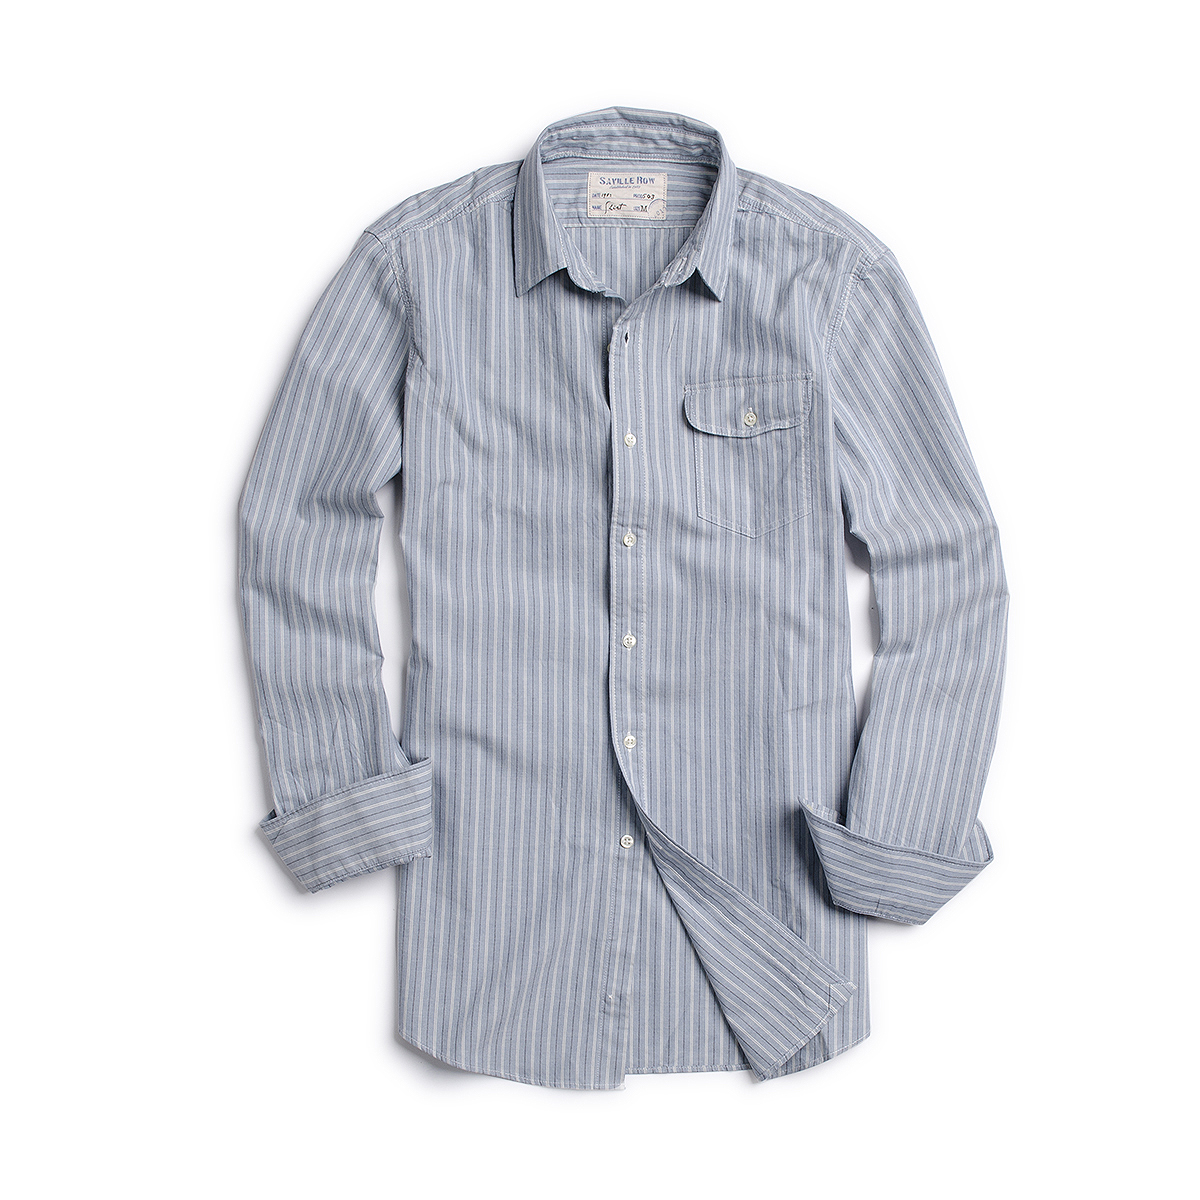 Camisa Sport Worker Harbor Mariner